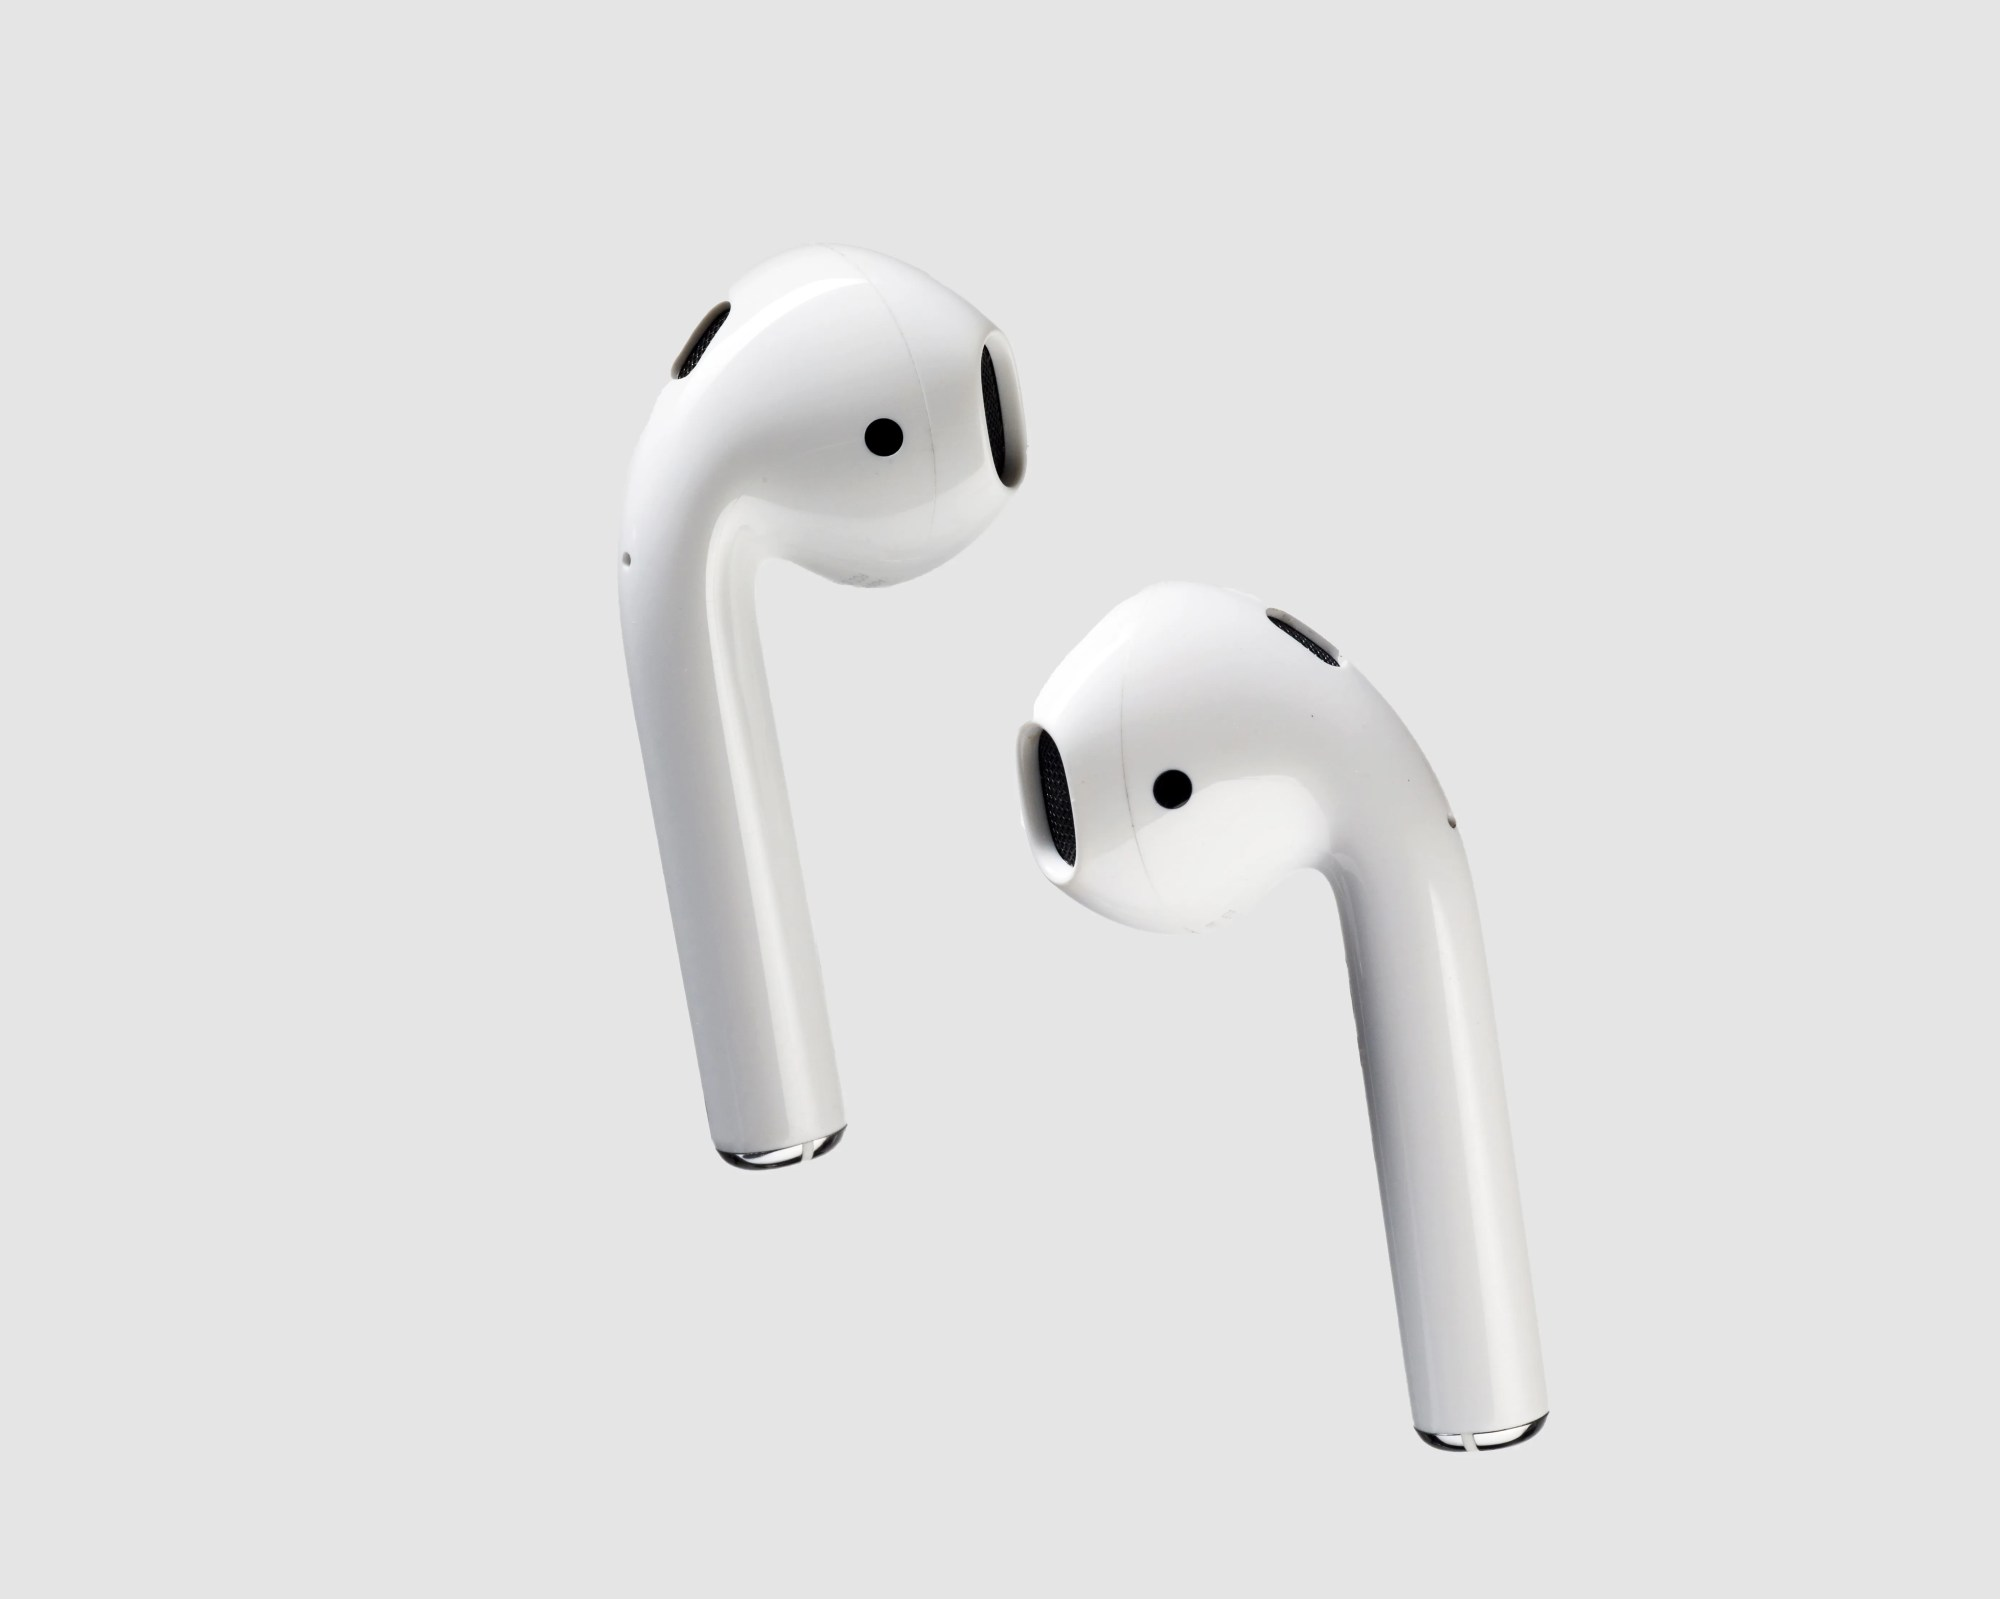 hight resolution of apple s new wireless headphones aren t for the iphone 7 they re for siri